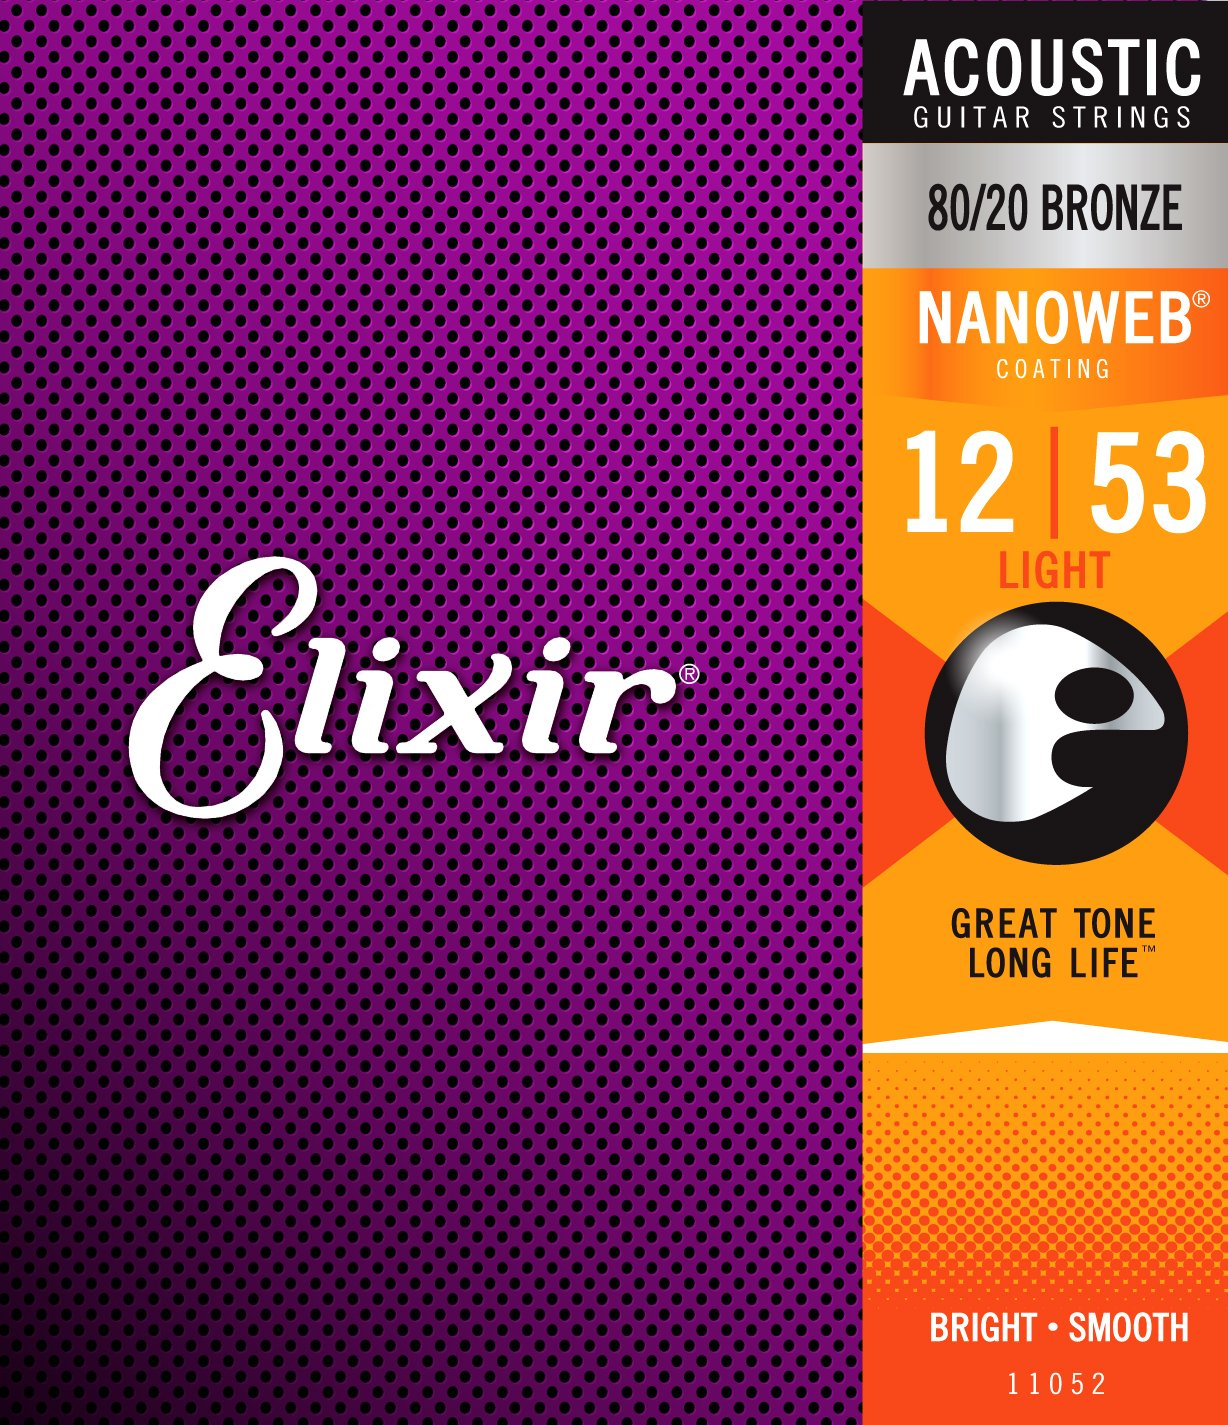 Elixir Strings 80/20 Bronze Acoustic Guitar Strings w NANOWEB Coating, Light (.012-.053)